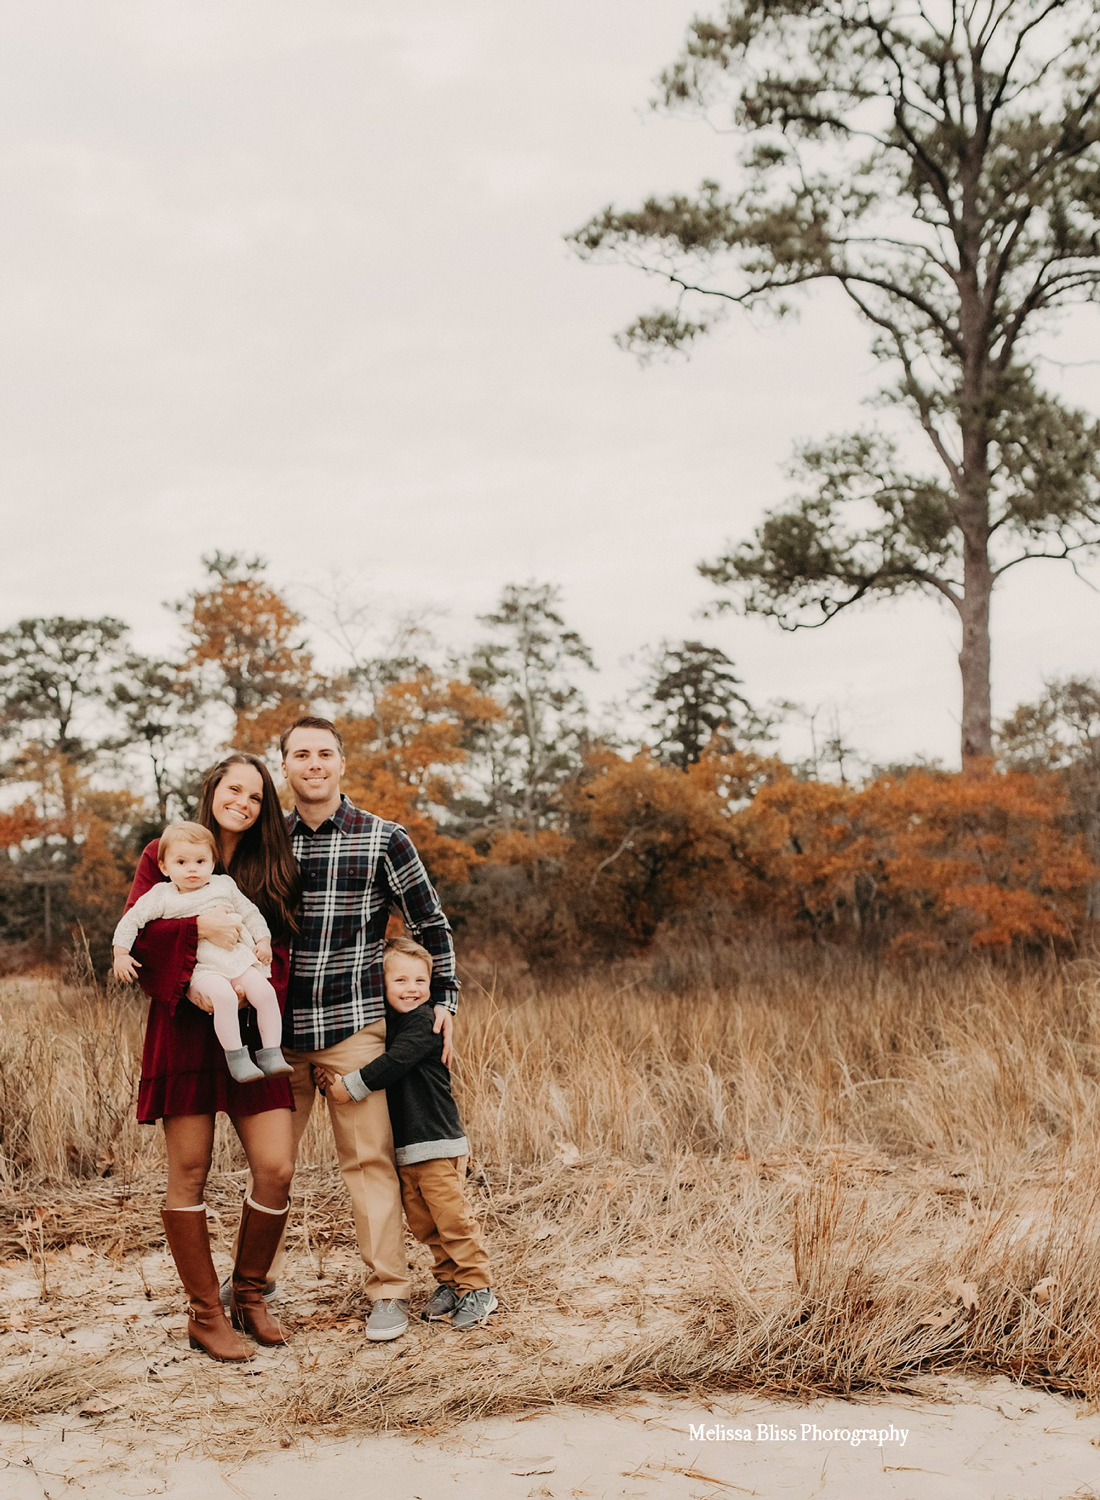 beauitful-outdoor-family-lifestyle-portrait-at-va-state-park-by-melissa-bliss-photography-virginia-beach-family-photographers.jpg